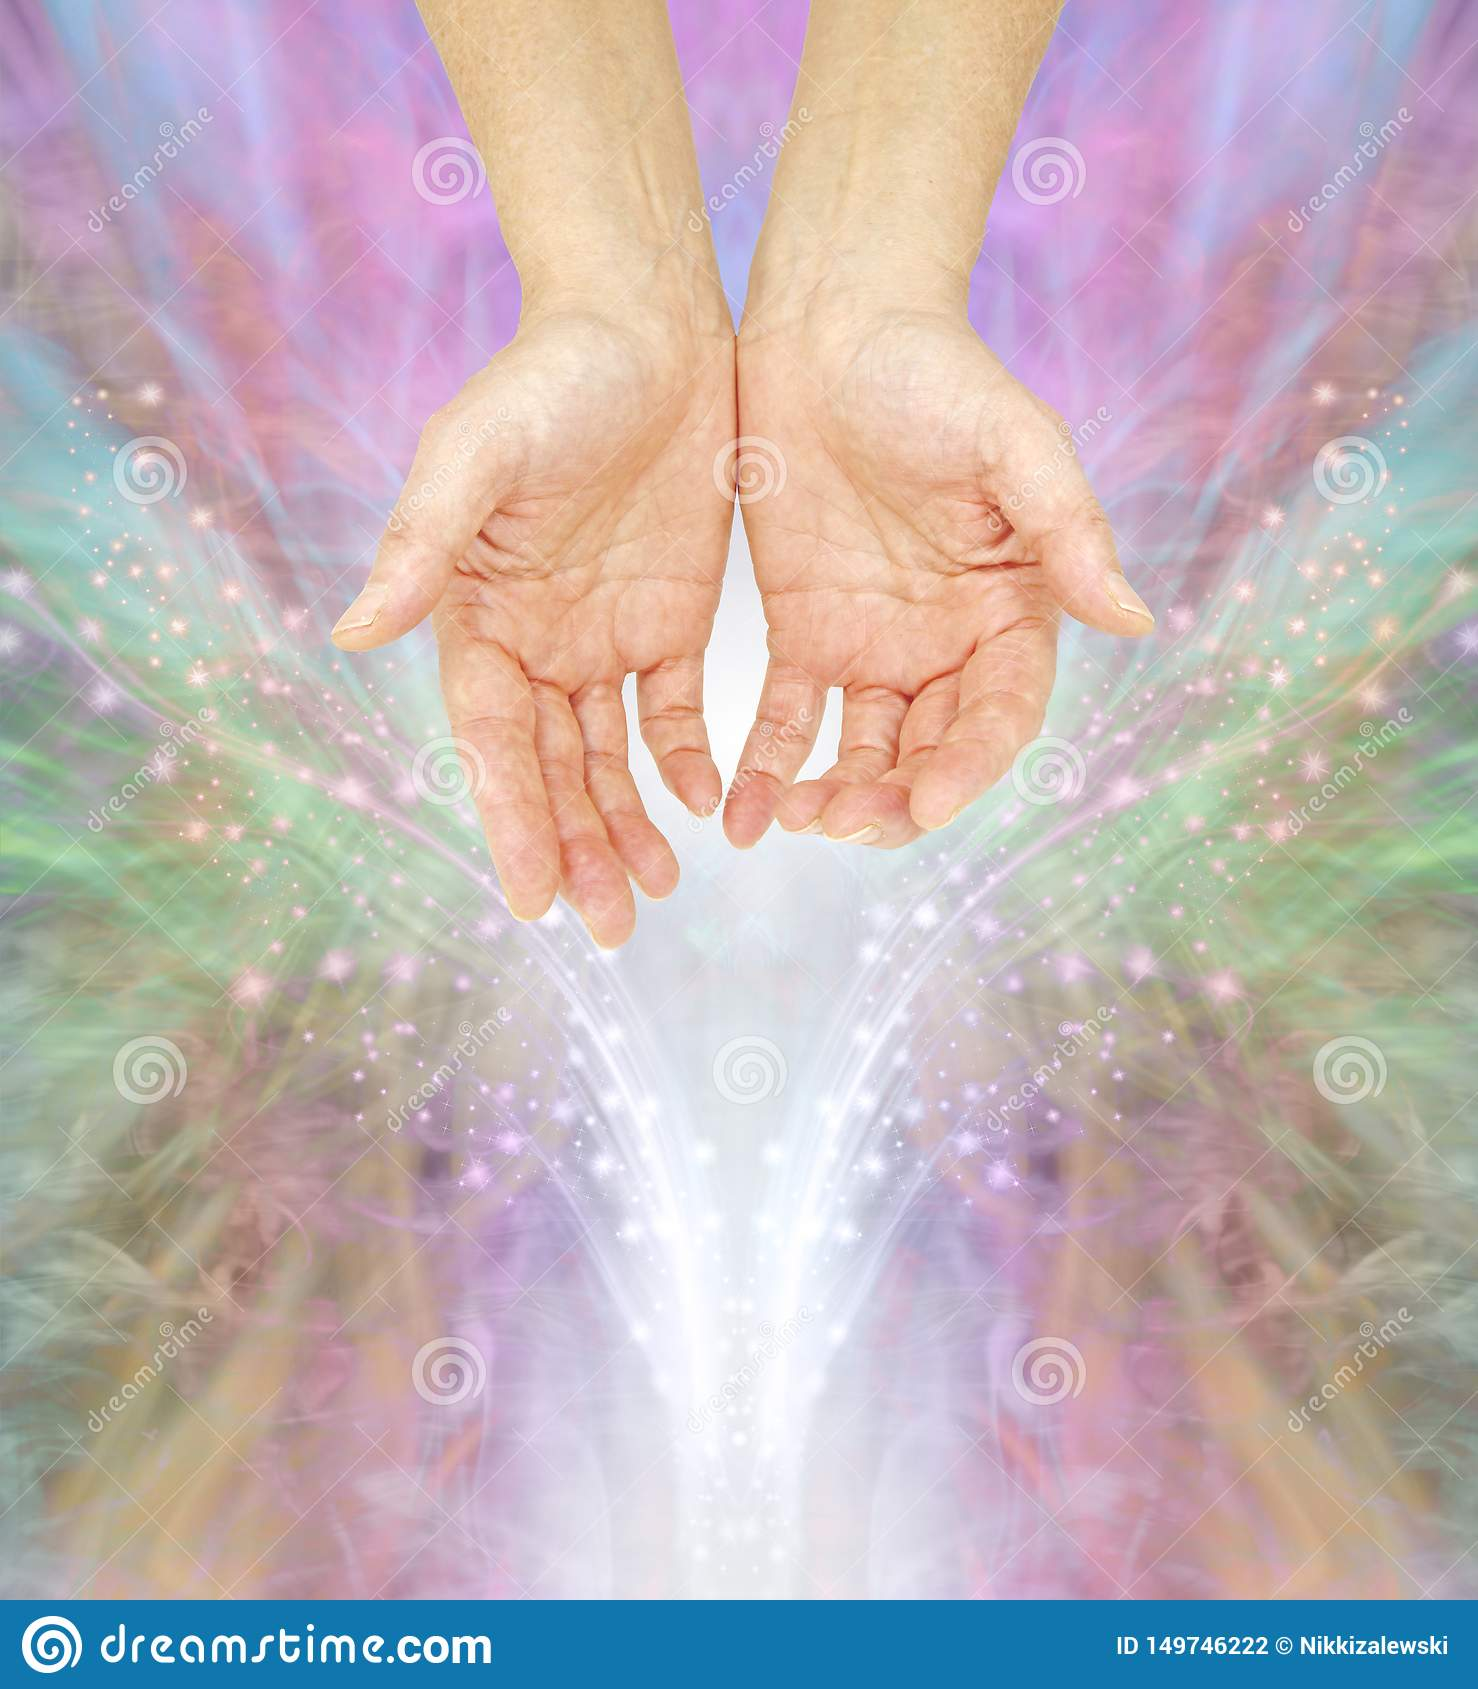 The humble hands of a Spiritual Healing Practitioner